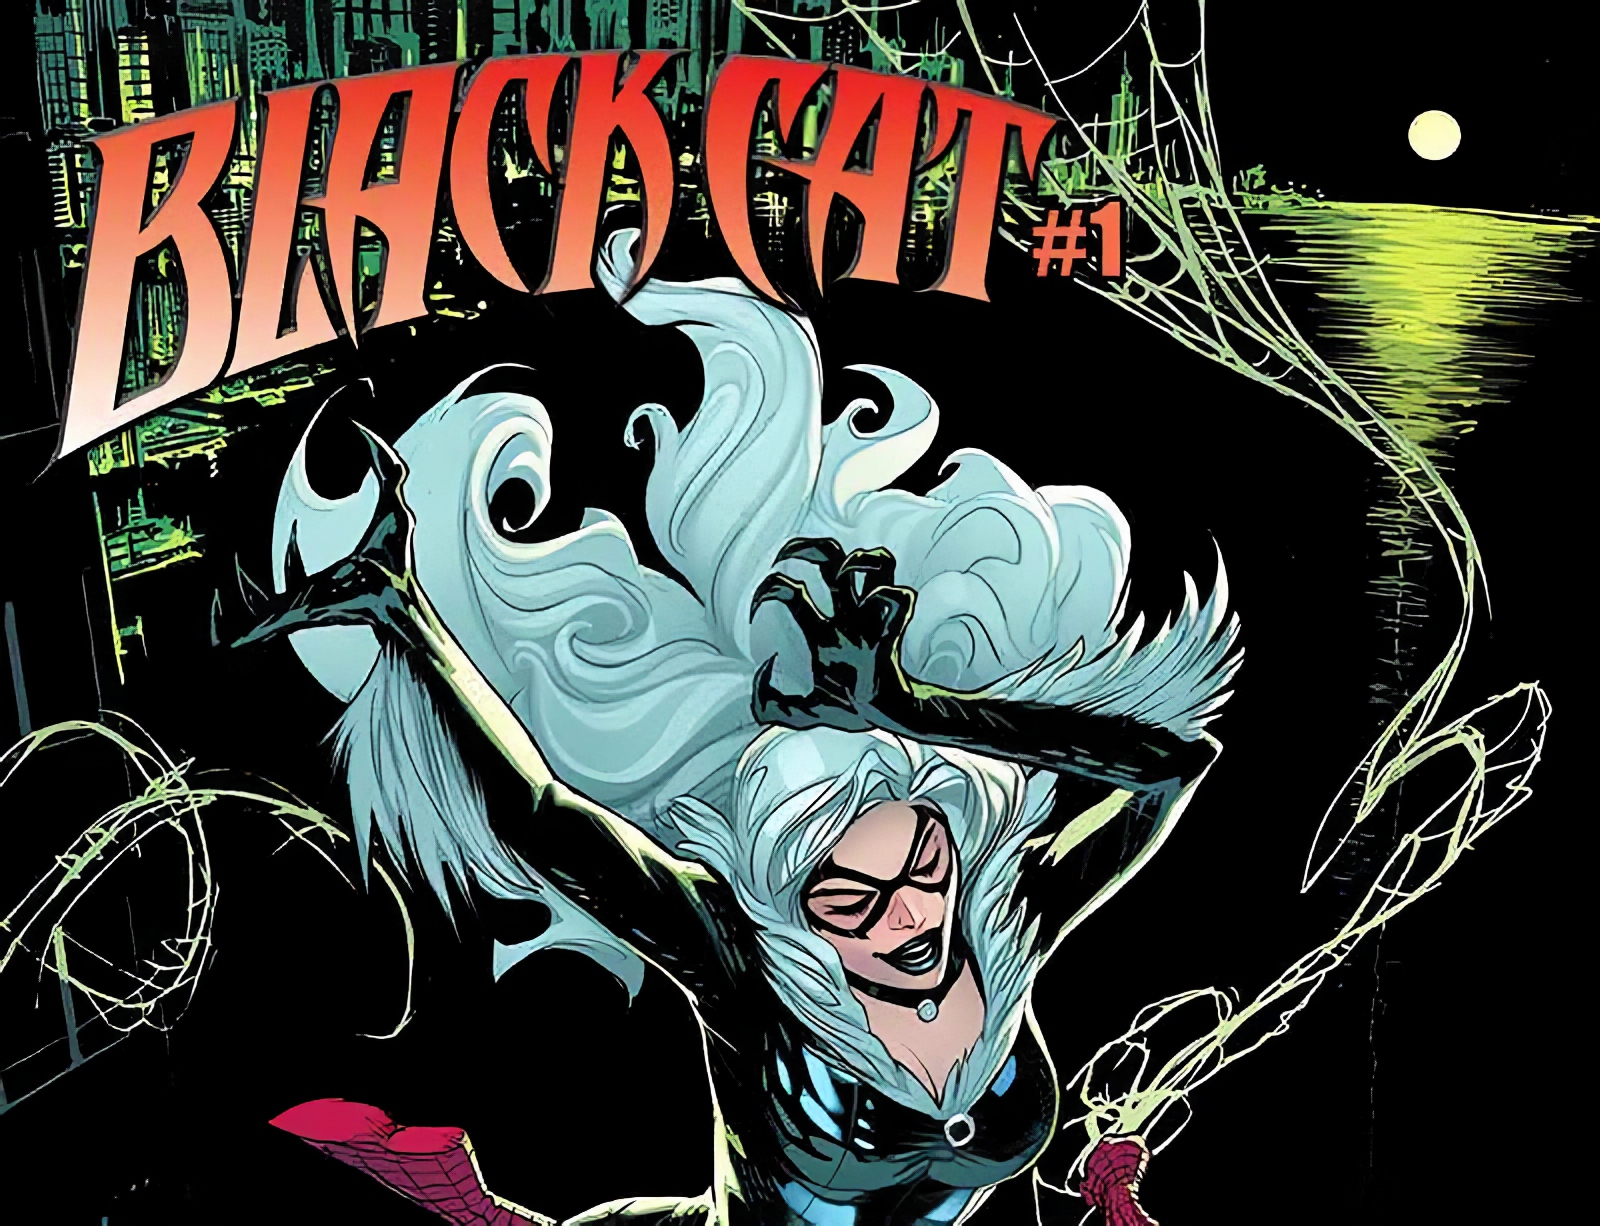 EXCLUSIVE Marvel First Look: Black Cat #1 variant by Pat Gleason